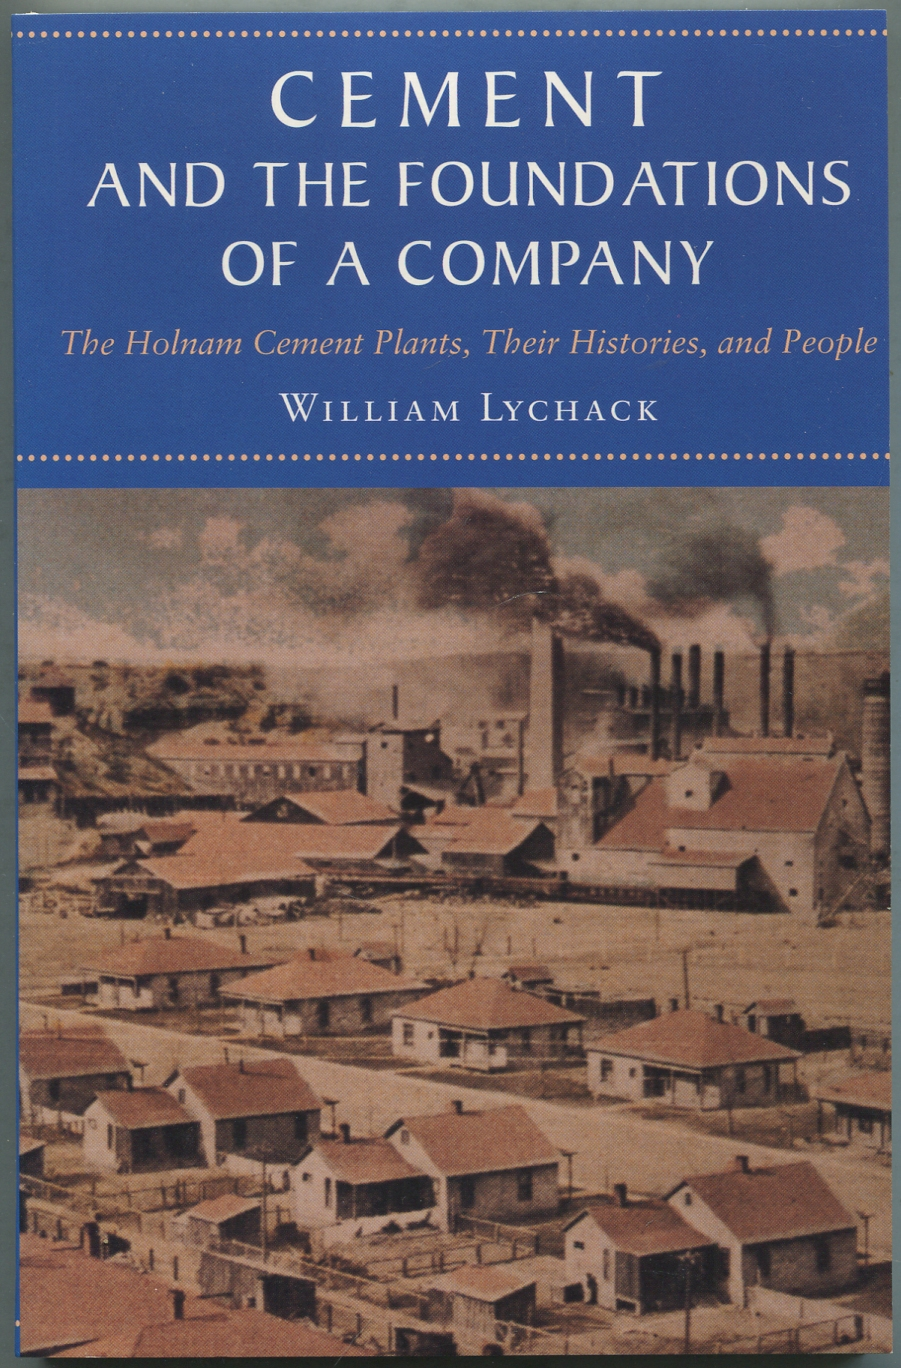 Cement and the Foundations of a Company: The Holnam Cement Plants, Their Histories, and People (1997) - Buy the Book:Amazon